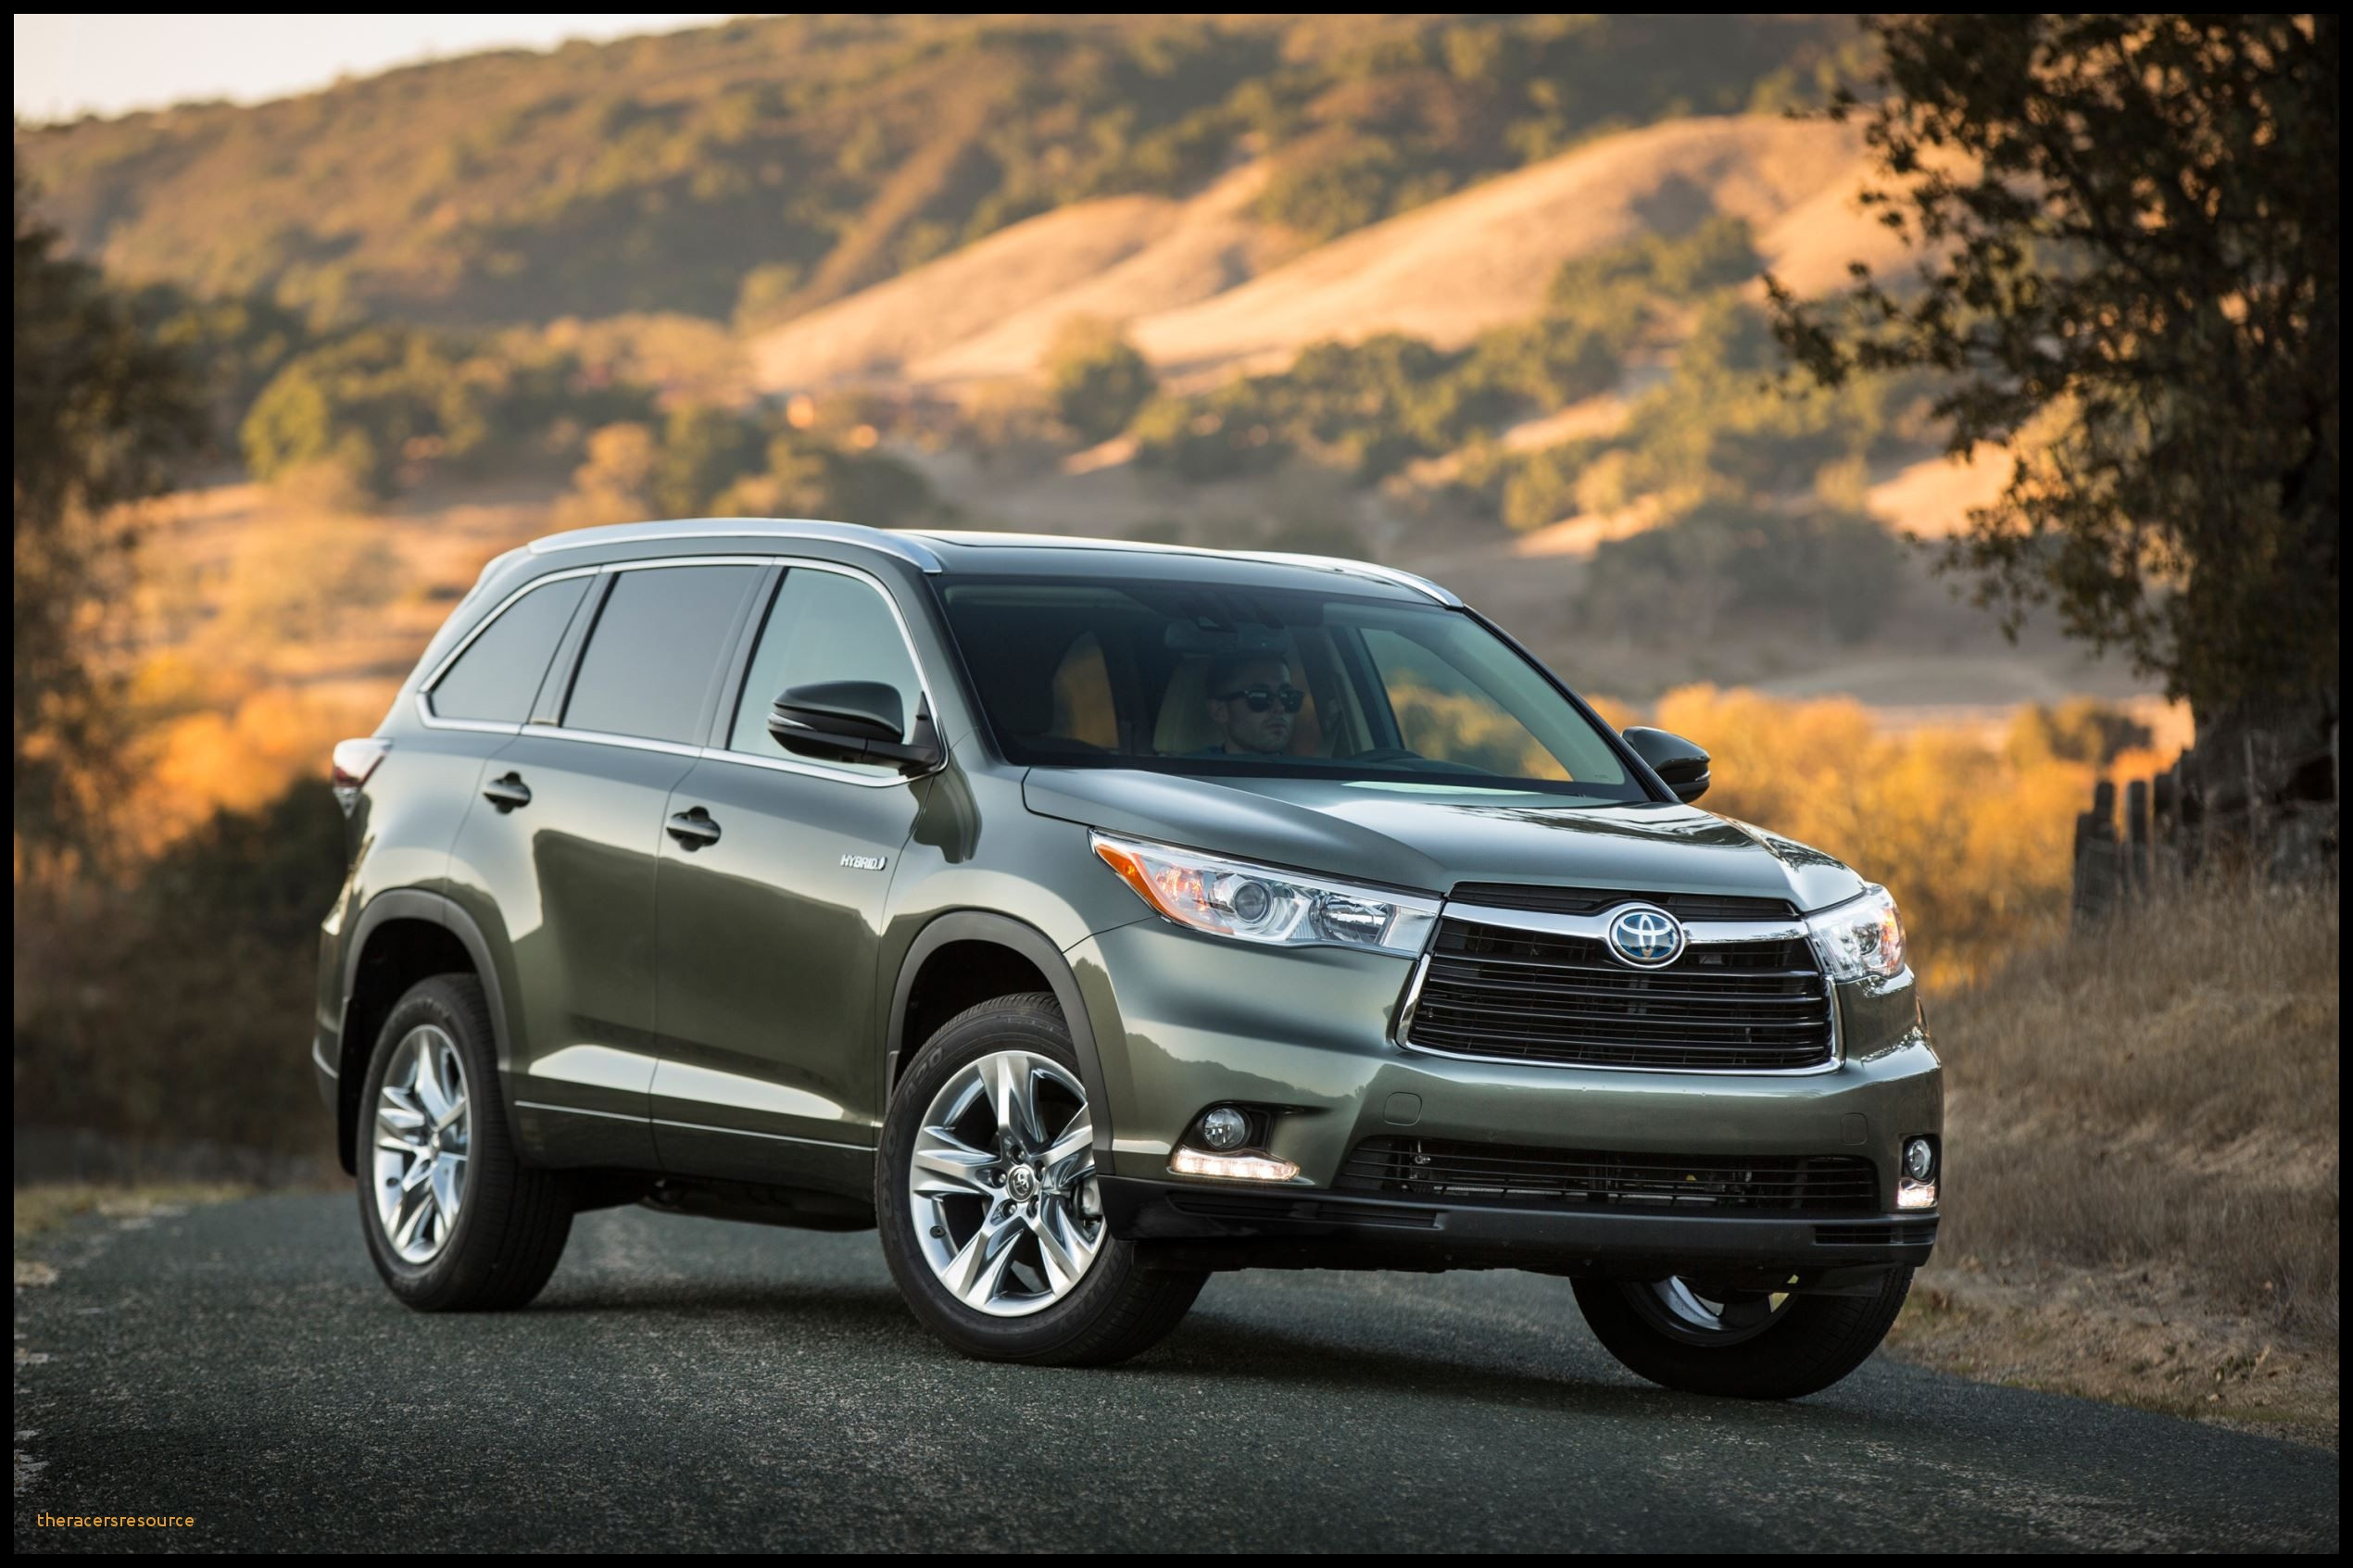 Hot Best Mpg Suv 2015 Frais toyota Highlander Hybrid 4wd 20 Most Fuel Redesign and Price